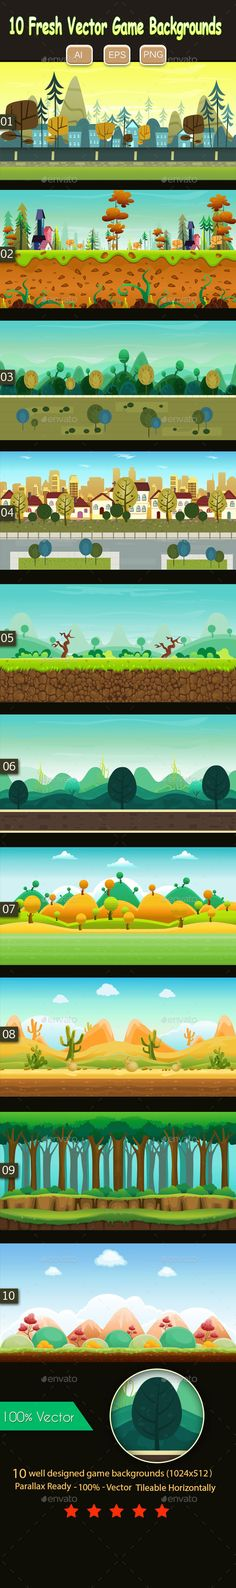 10 Fresh Vector Game Backgrounds